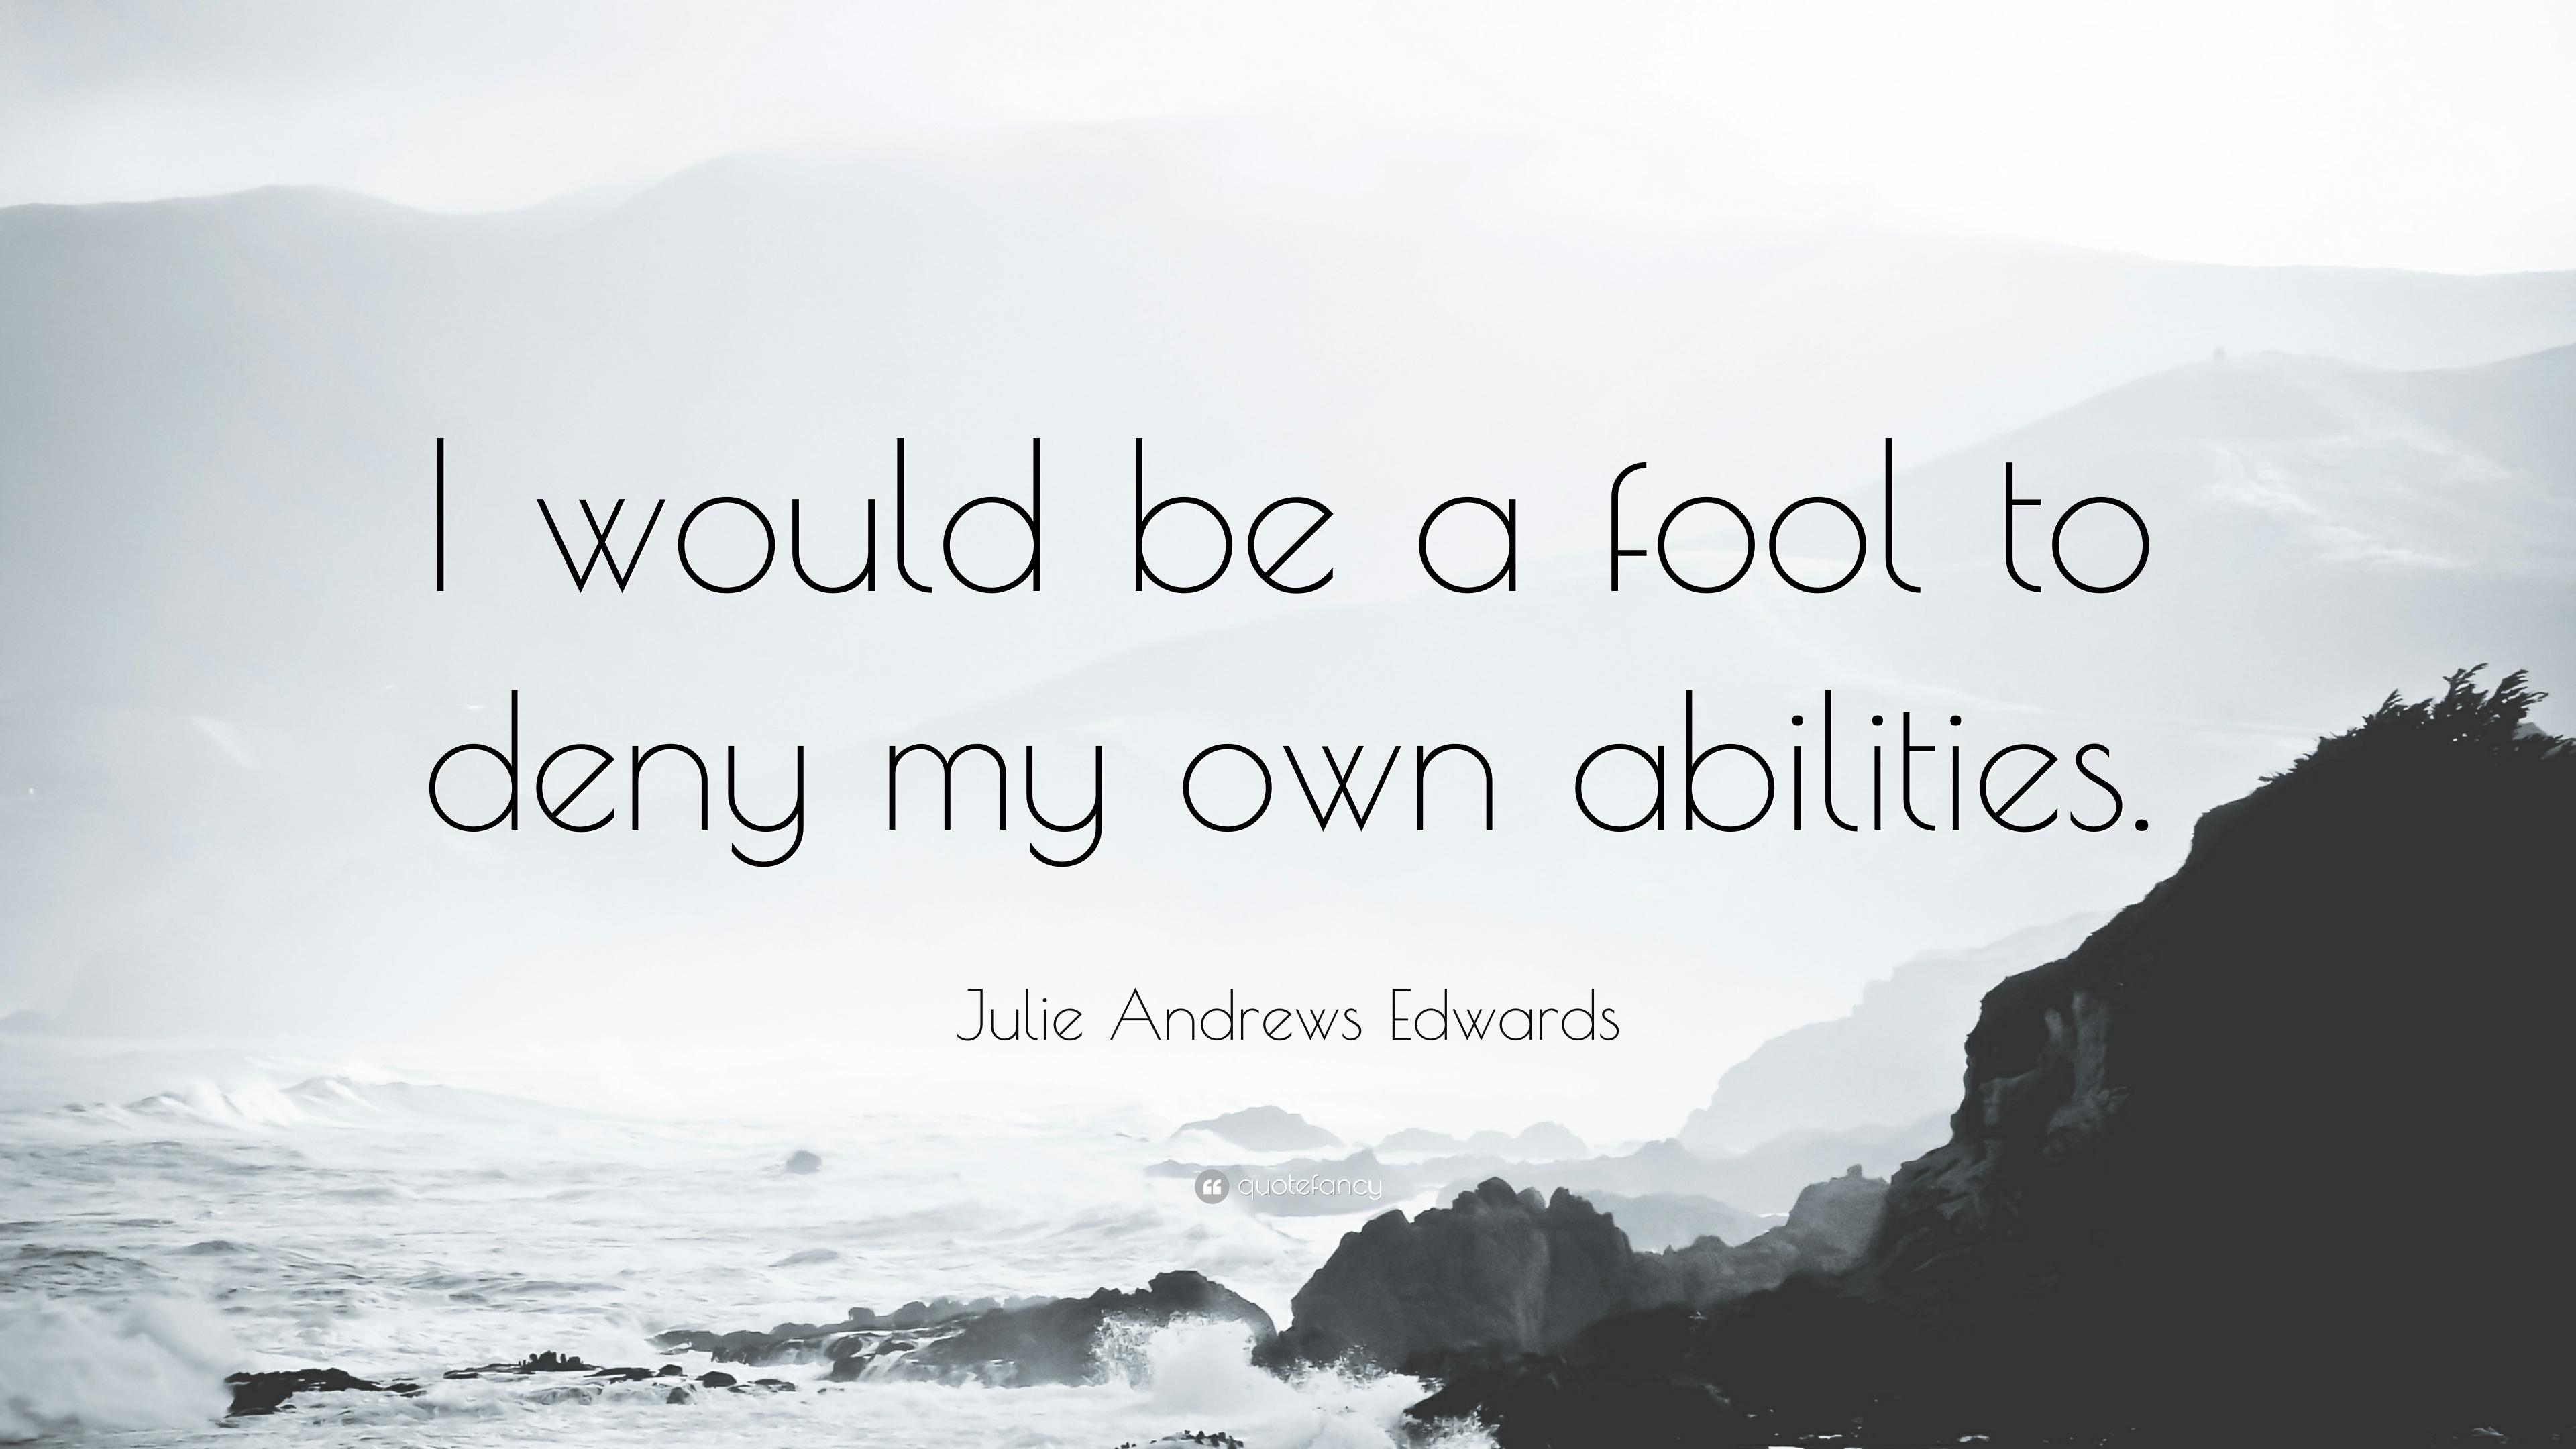 Julie Andrews Edwards Quotes